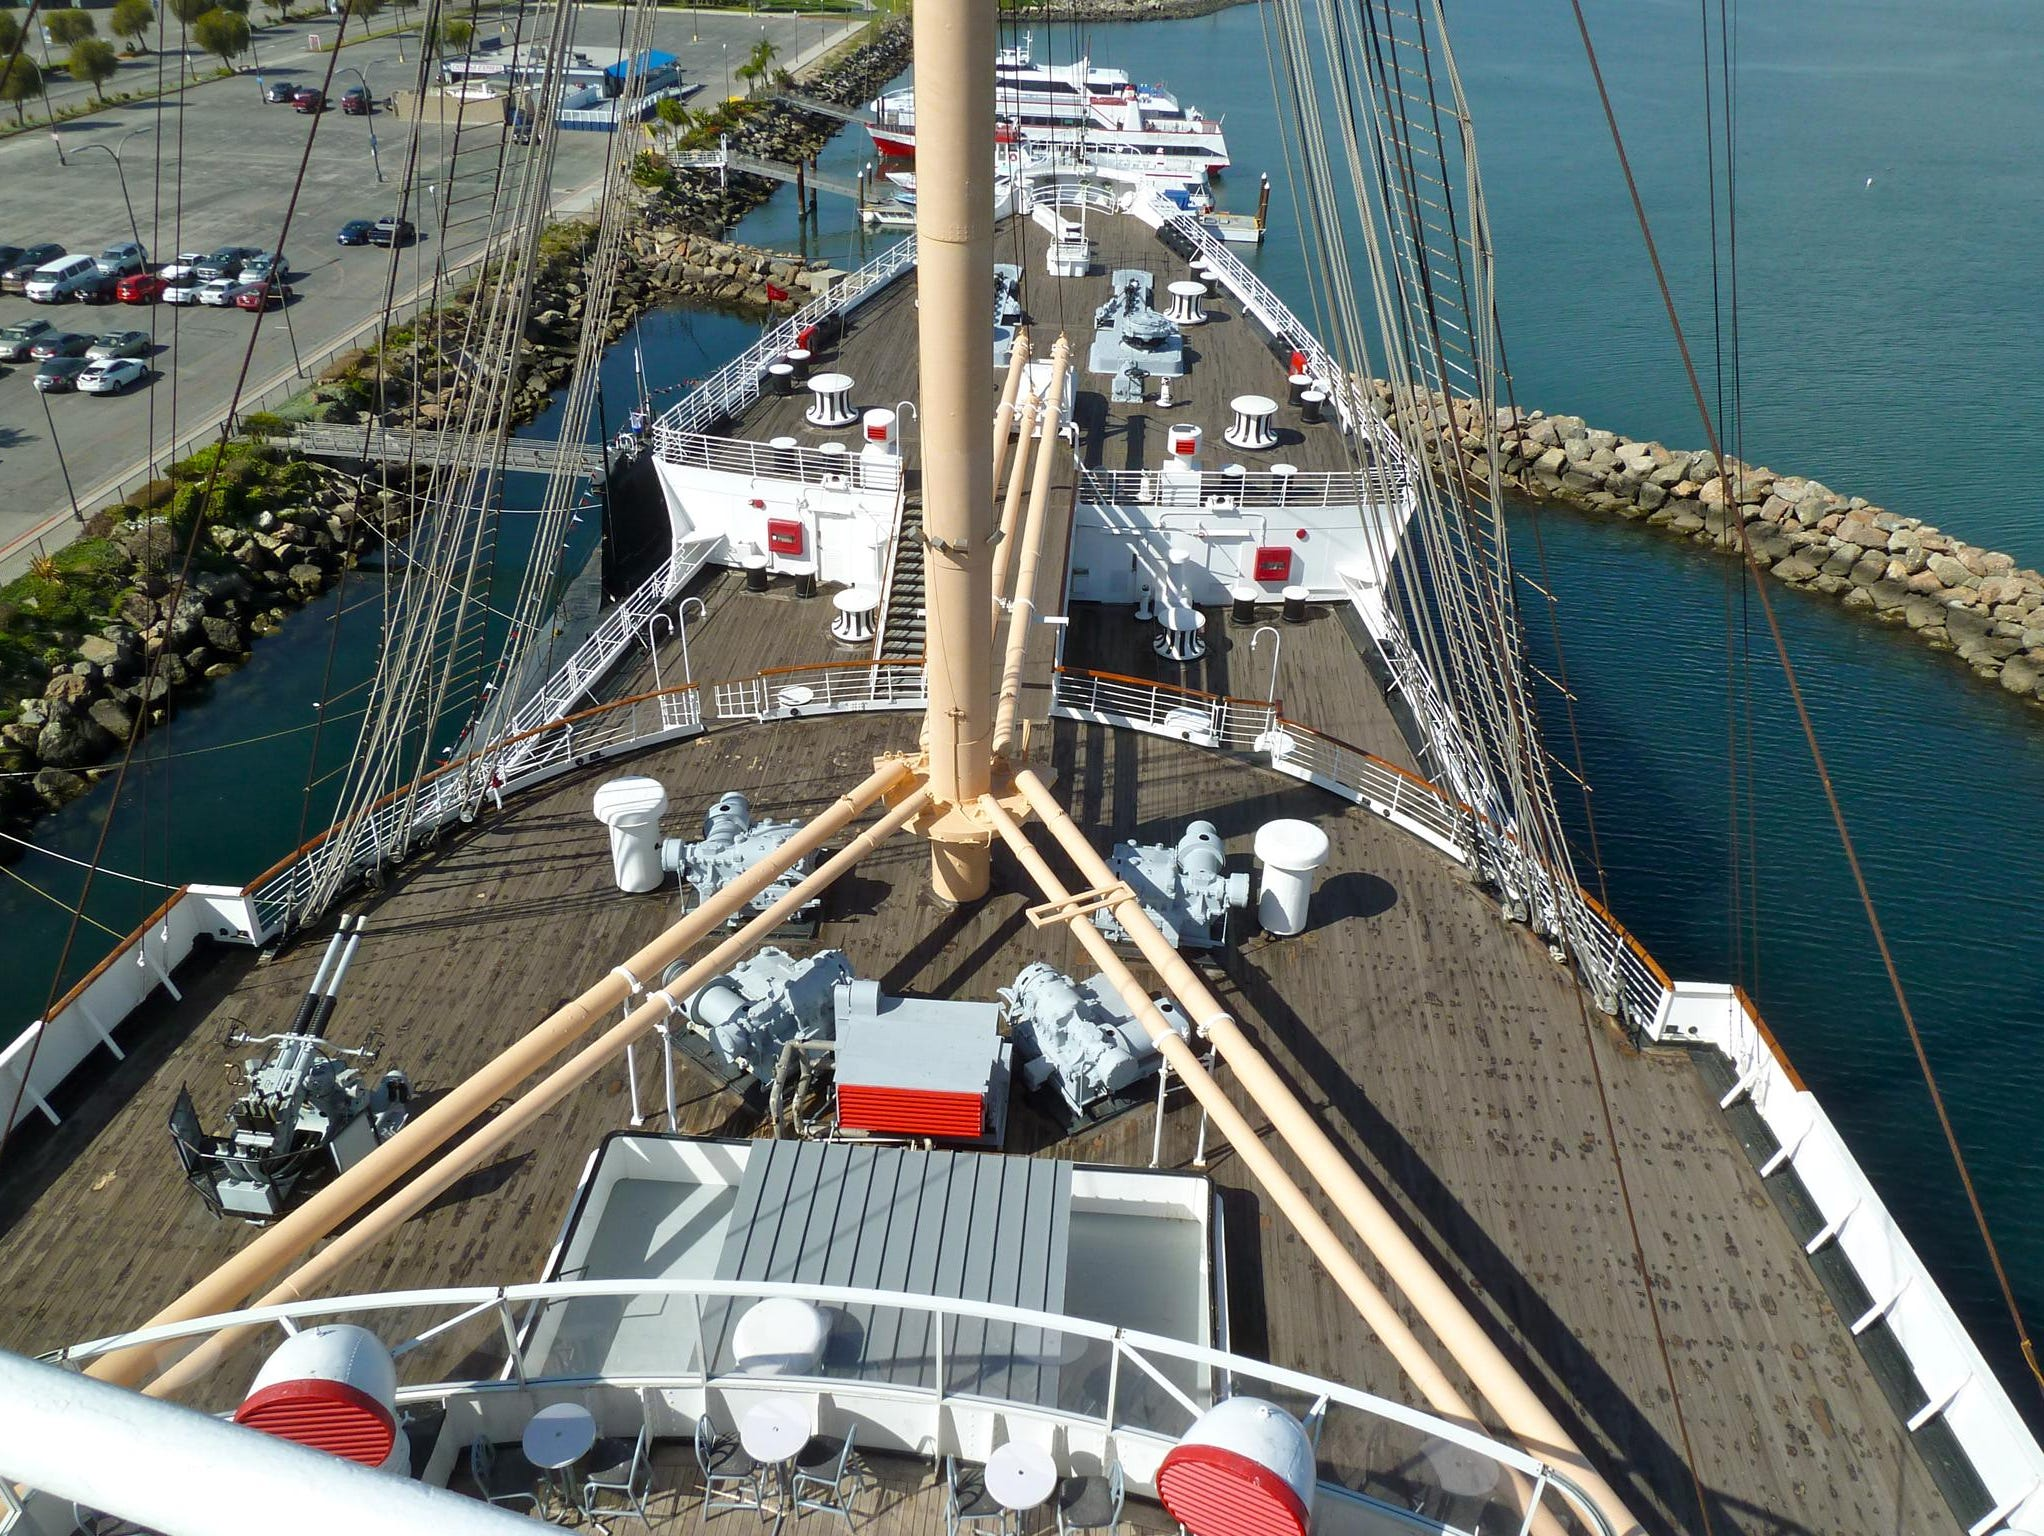 This is a view over the Queen Mary's long bow from the (crew-only) compass platform atop the wheelhouse.